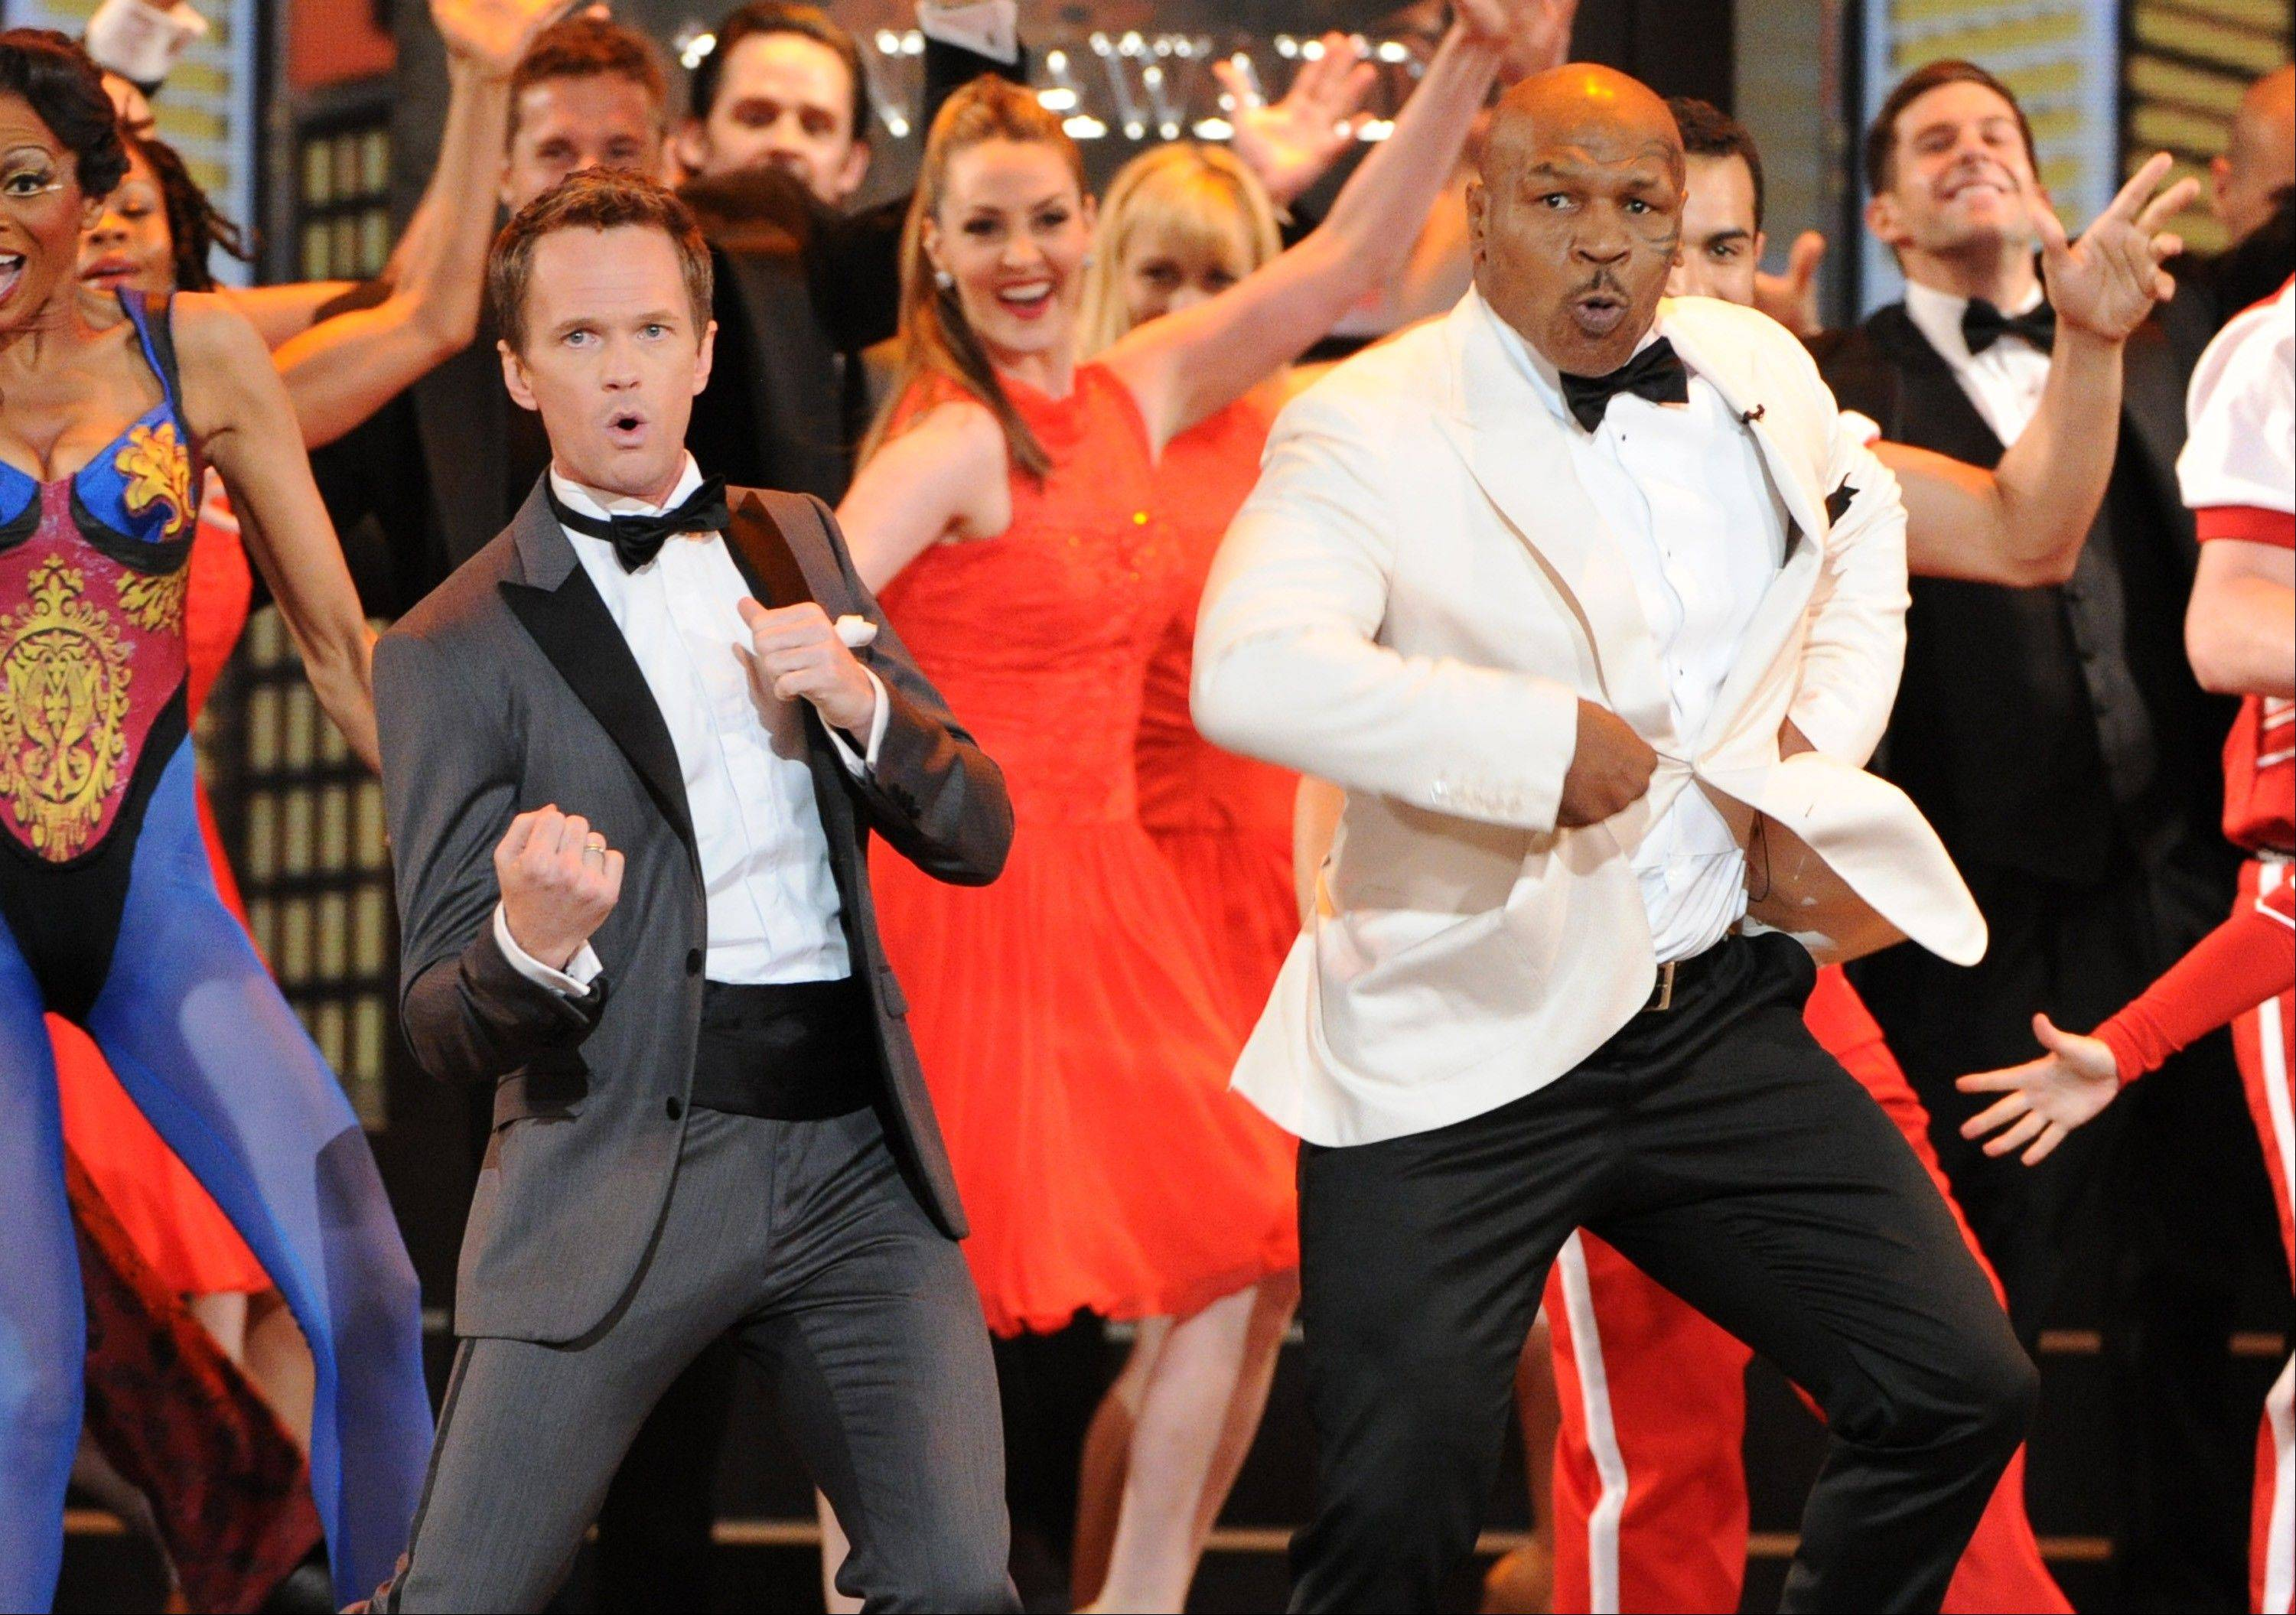 Actor Neil Patrick Harris, left, and Mike Tyson perform on stage during the opening number at the 67th Annual Tony Awards, on Sunday, June 9, 2013 in New York.